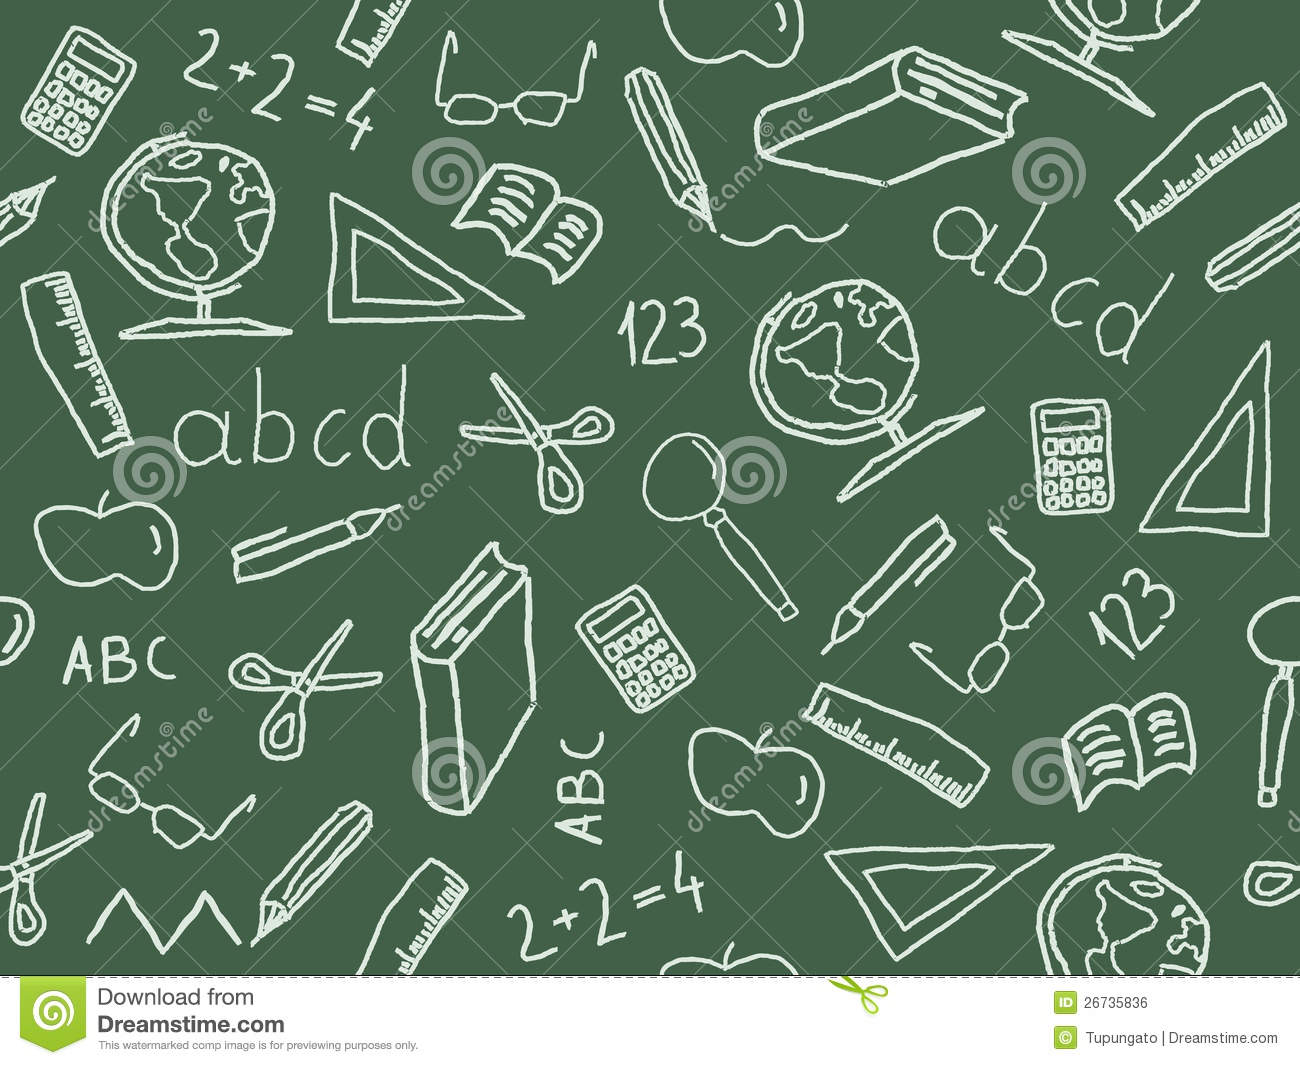 13 Education Background Graphic Design Images - Free ...